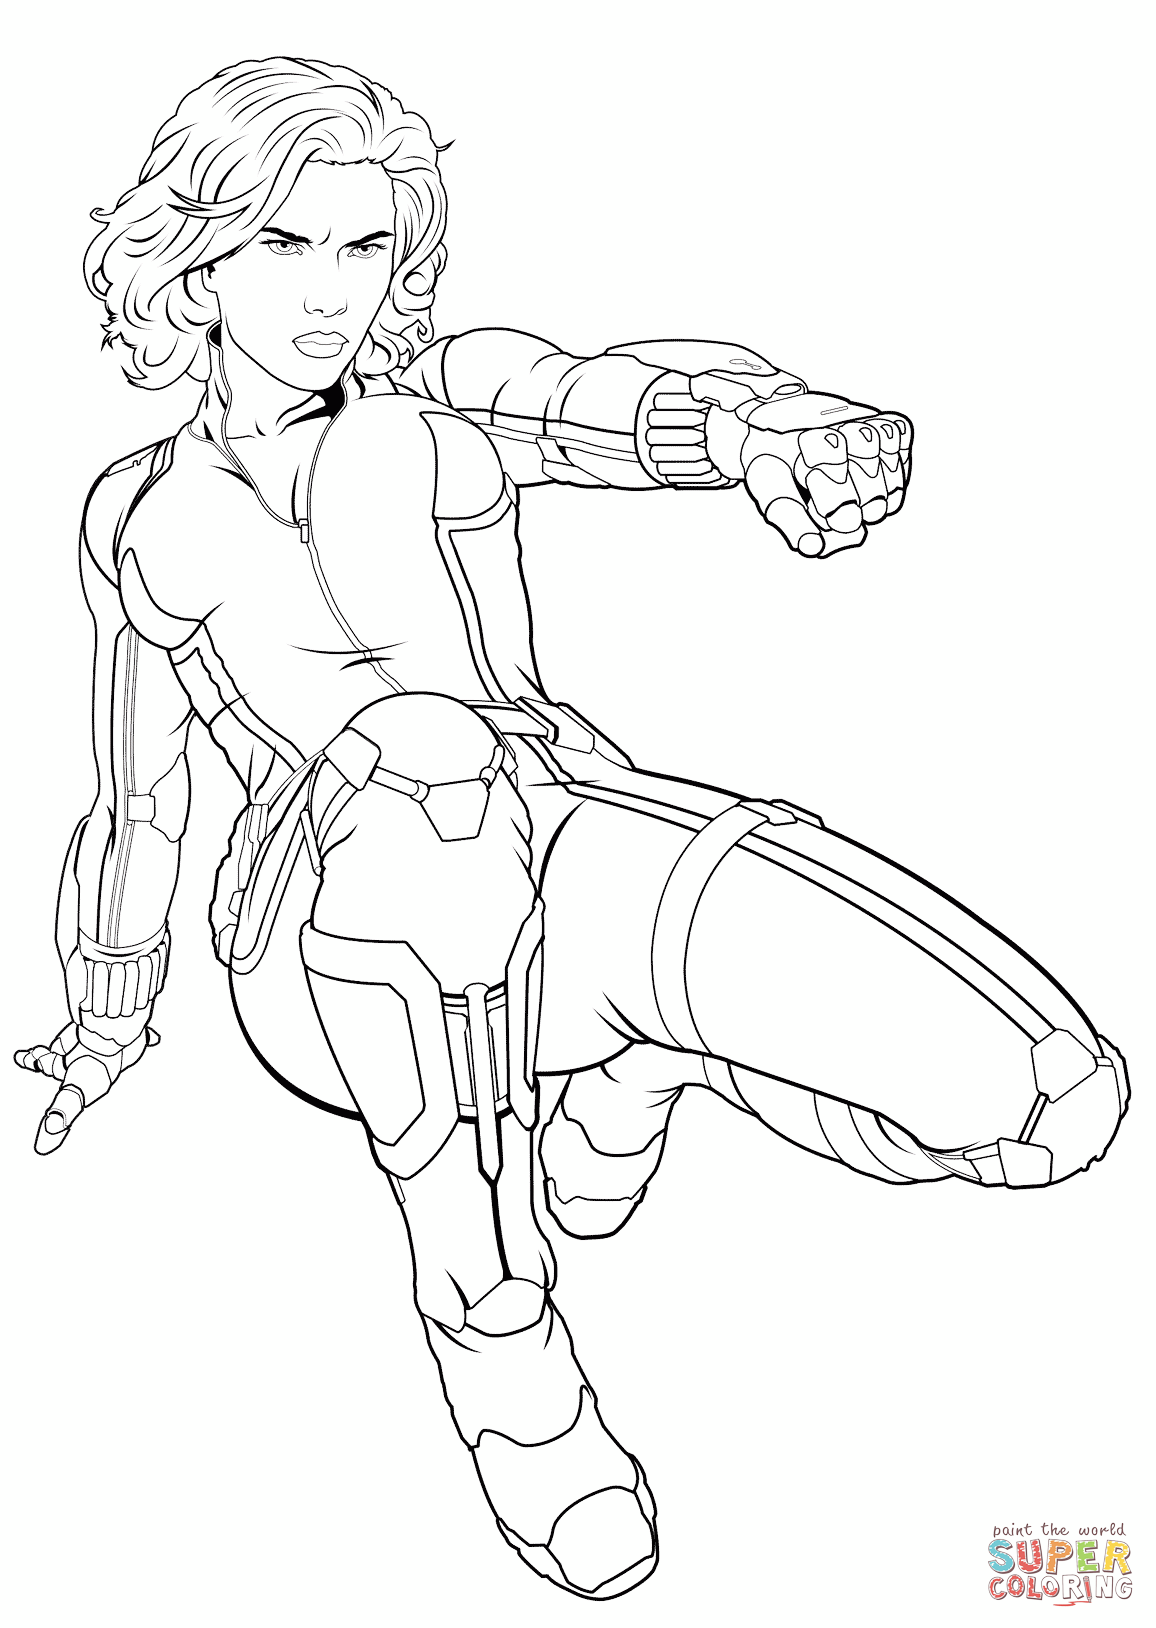 Avengers Black Widow | Super Coloring | Coloring Pages